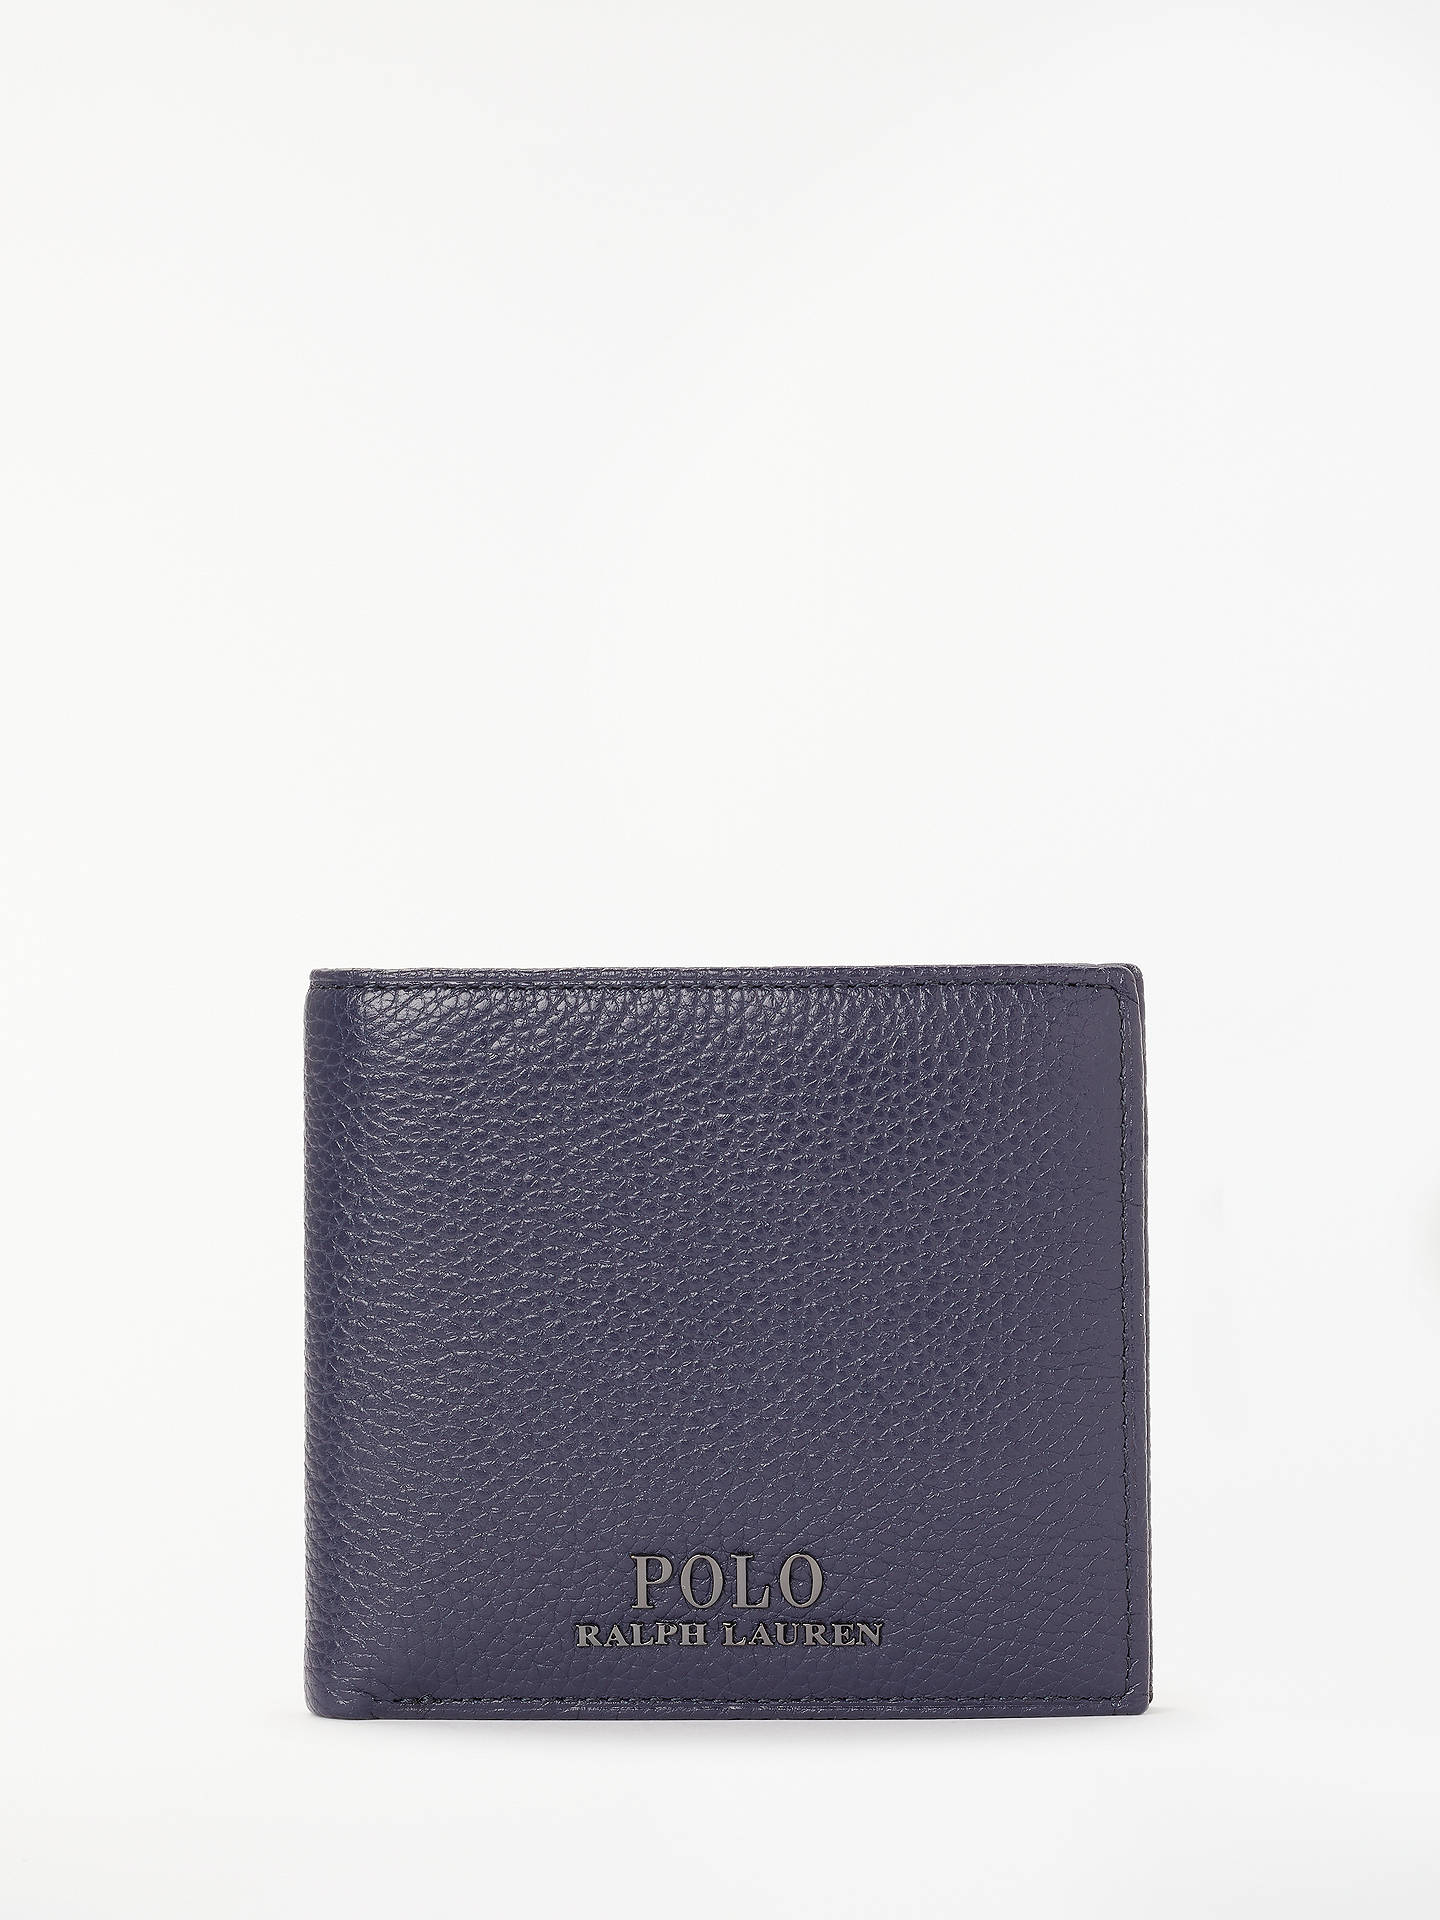 BuyPolo Ralph Lauren Pebble Leather Bifold Wallet, Navy Online at johnlewis.com